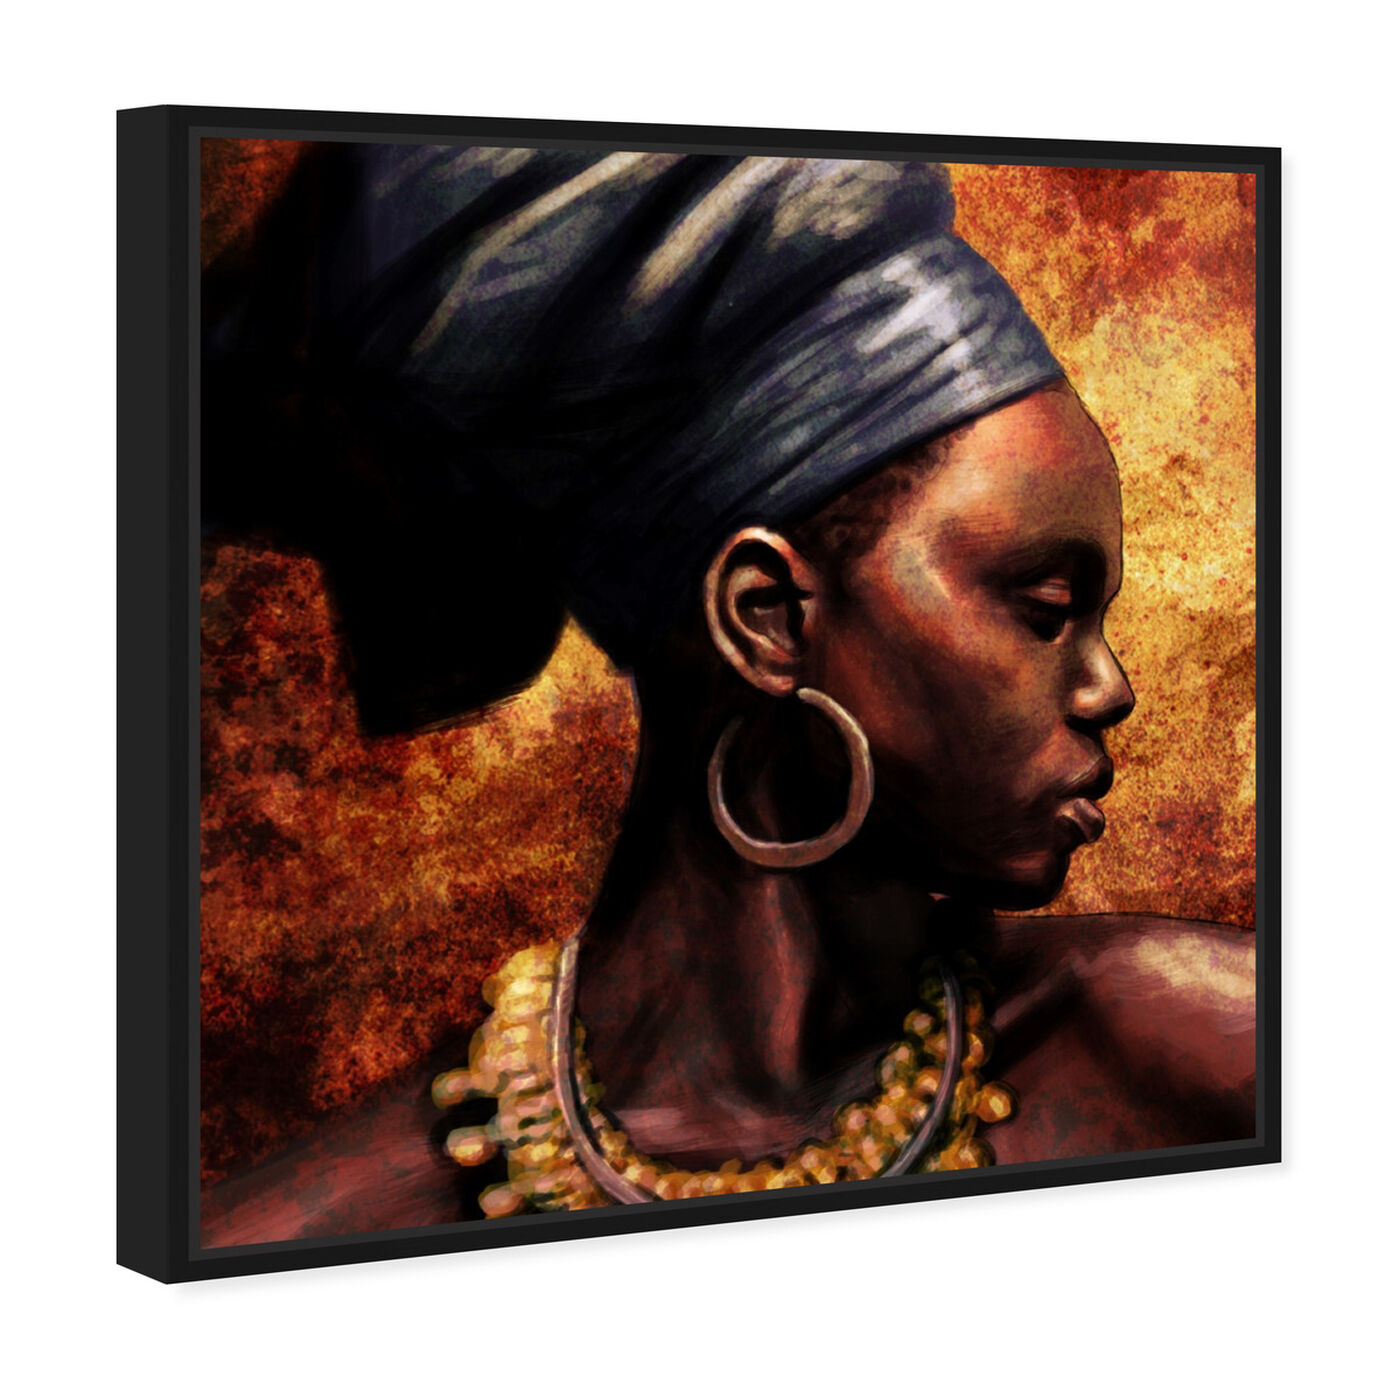 Angled view of Ashanti featuring people and portraits and portraits art.